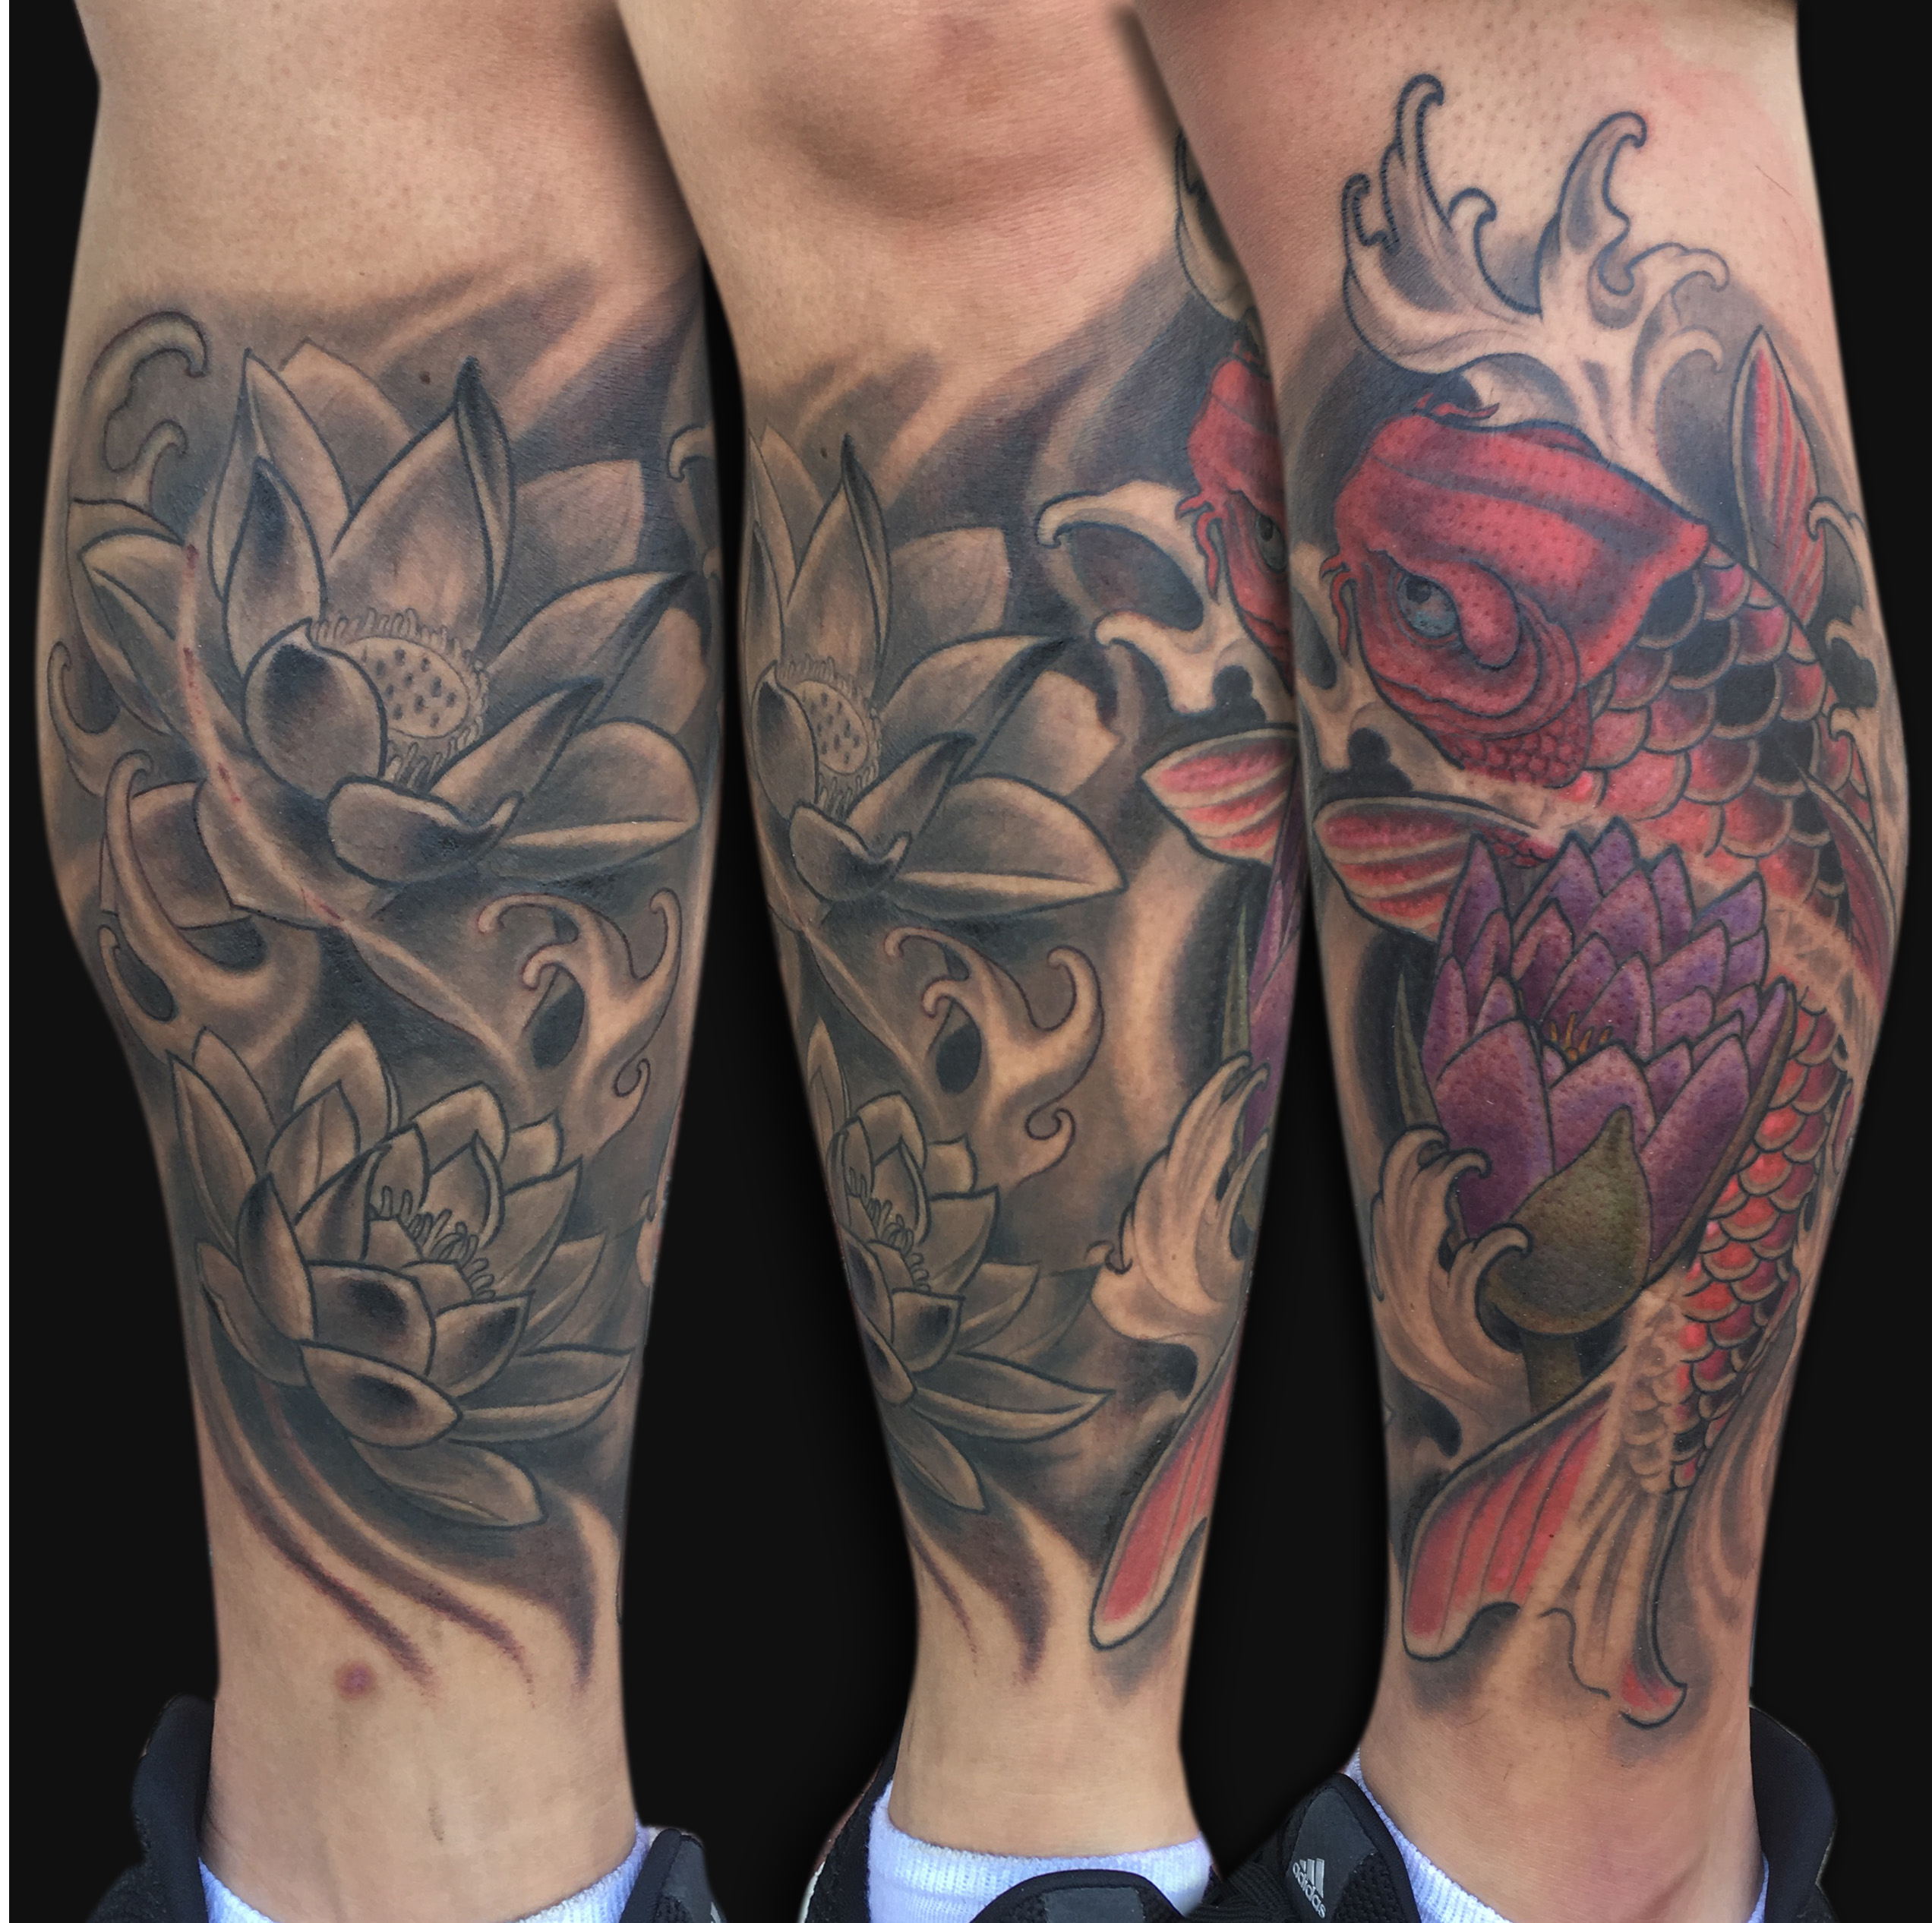 Koi Fish With Lotus Flower Tattoo On Leg By Spencer Caligiuri